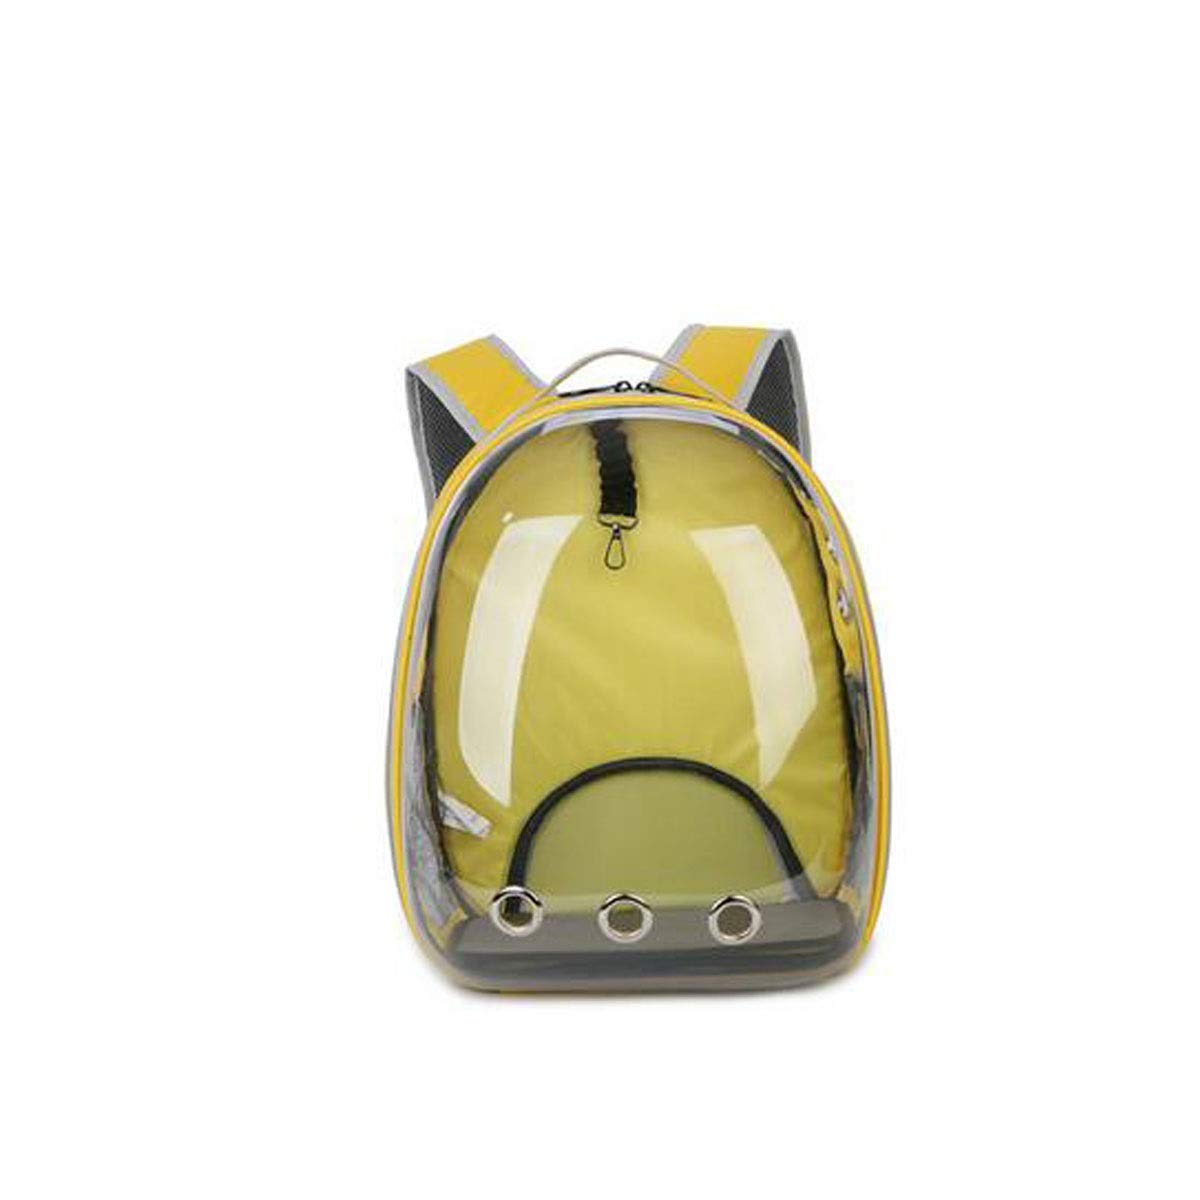 Yellow Outdoor Pet Full Transparent Backpack, Wear-Resistant, Dirt-Resistant and Breathable, Suitable for Dogs, Cats, Small Pets (color   Yellow)